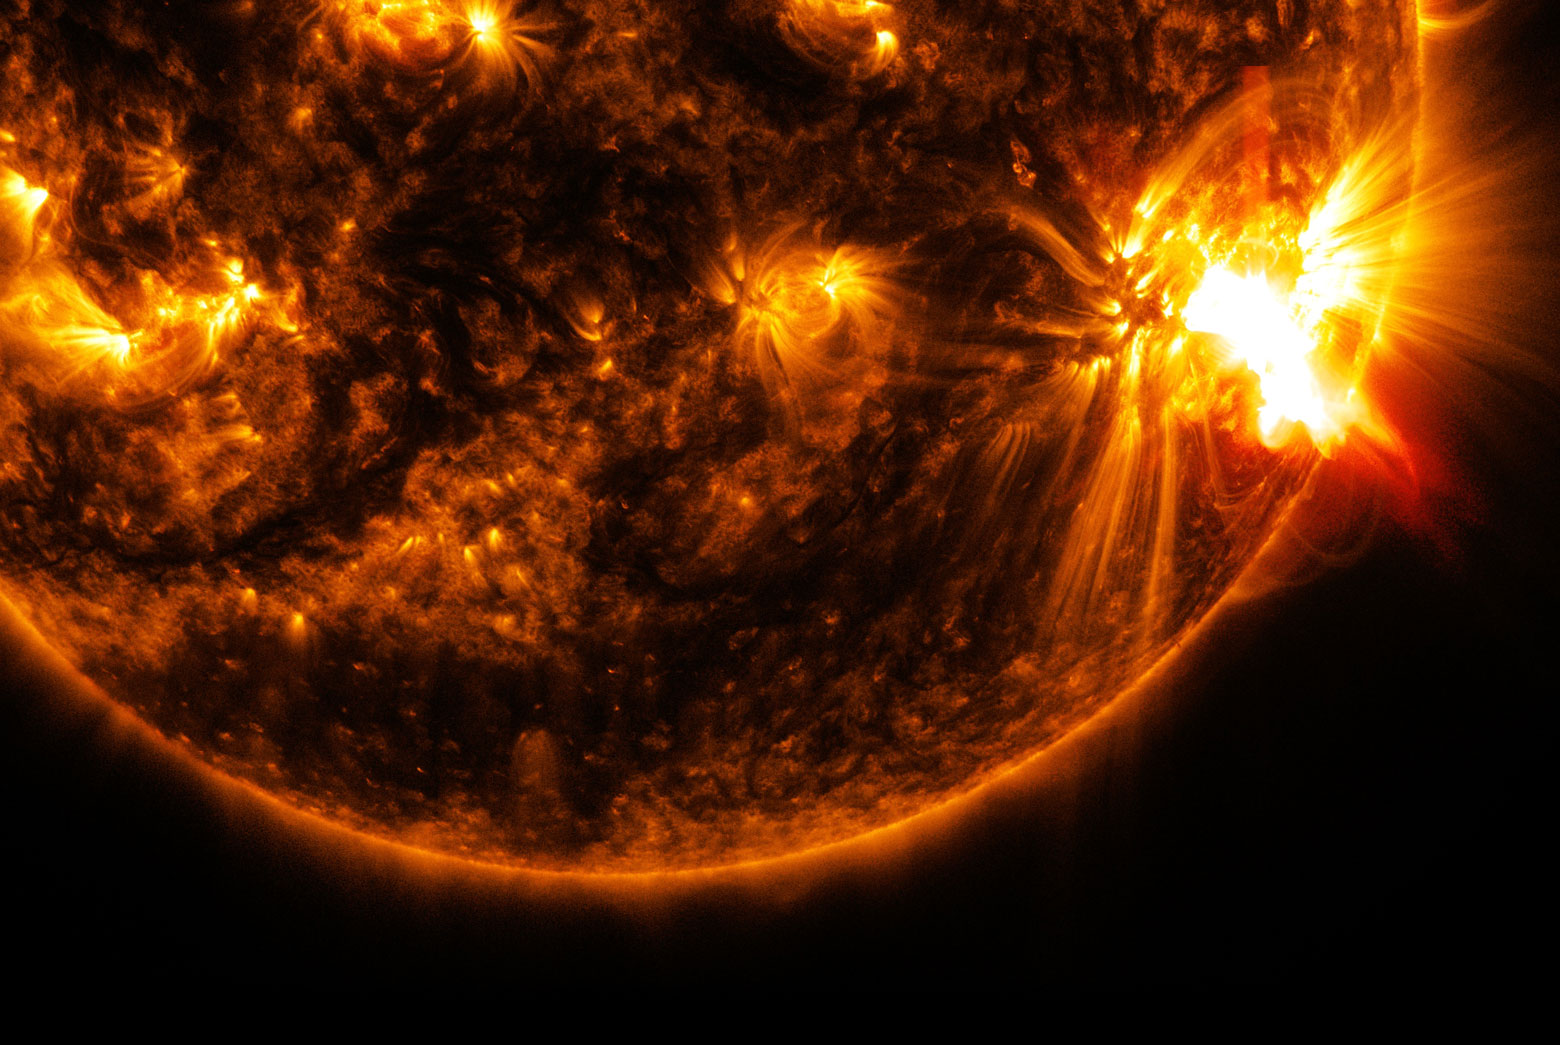 NASA's Solar Dynamics Observatory captured this image of an X2.0-class solar flare